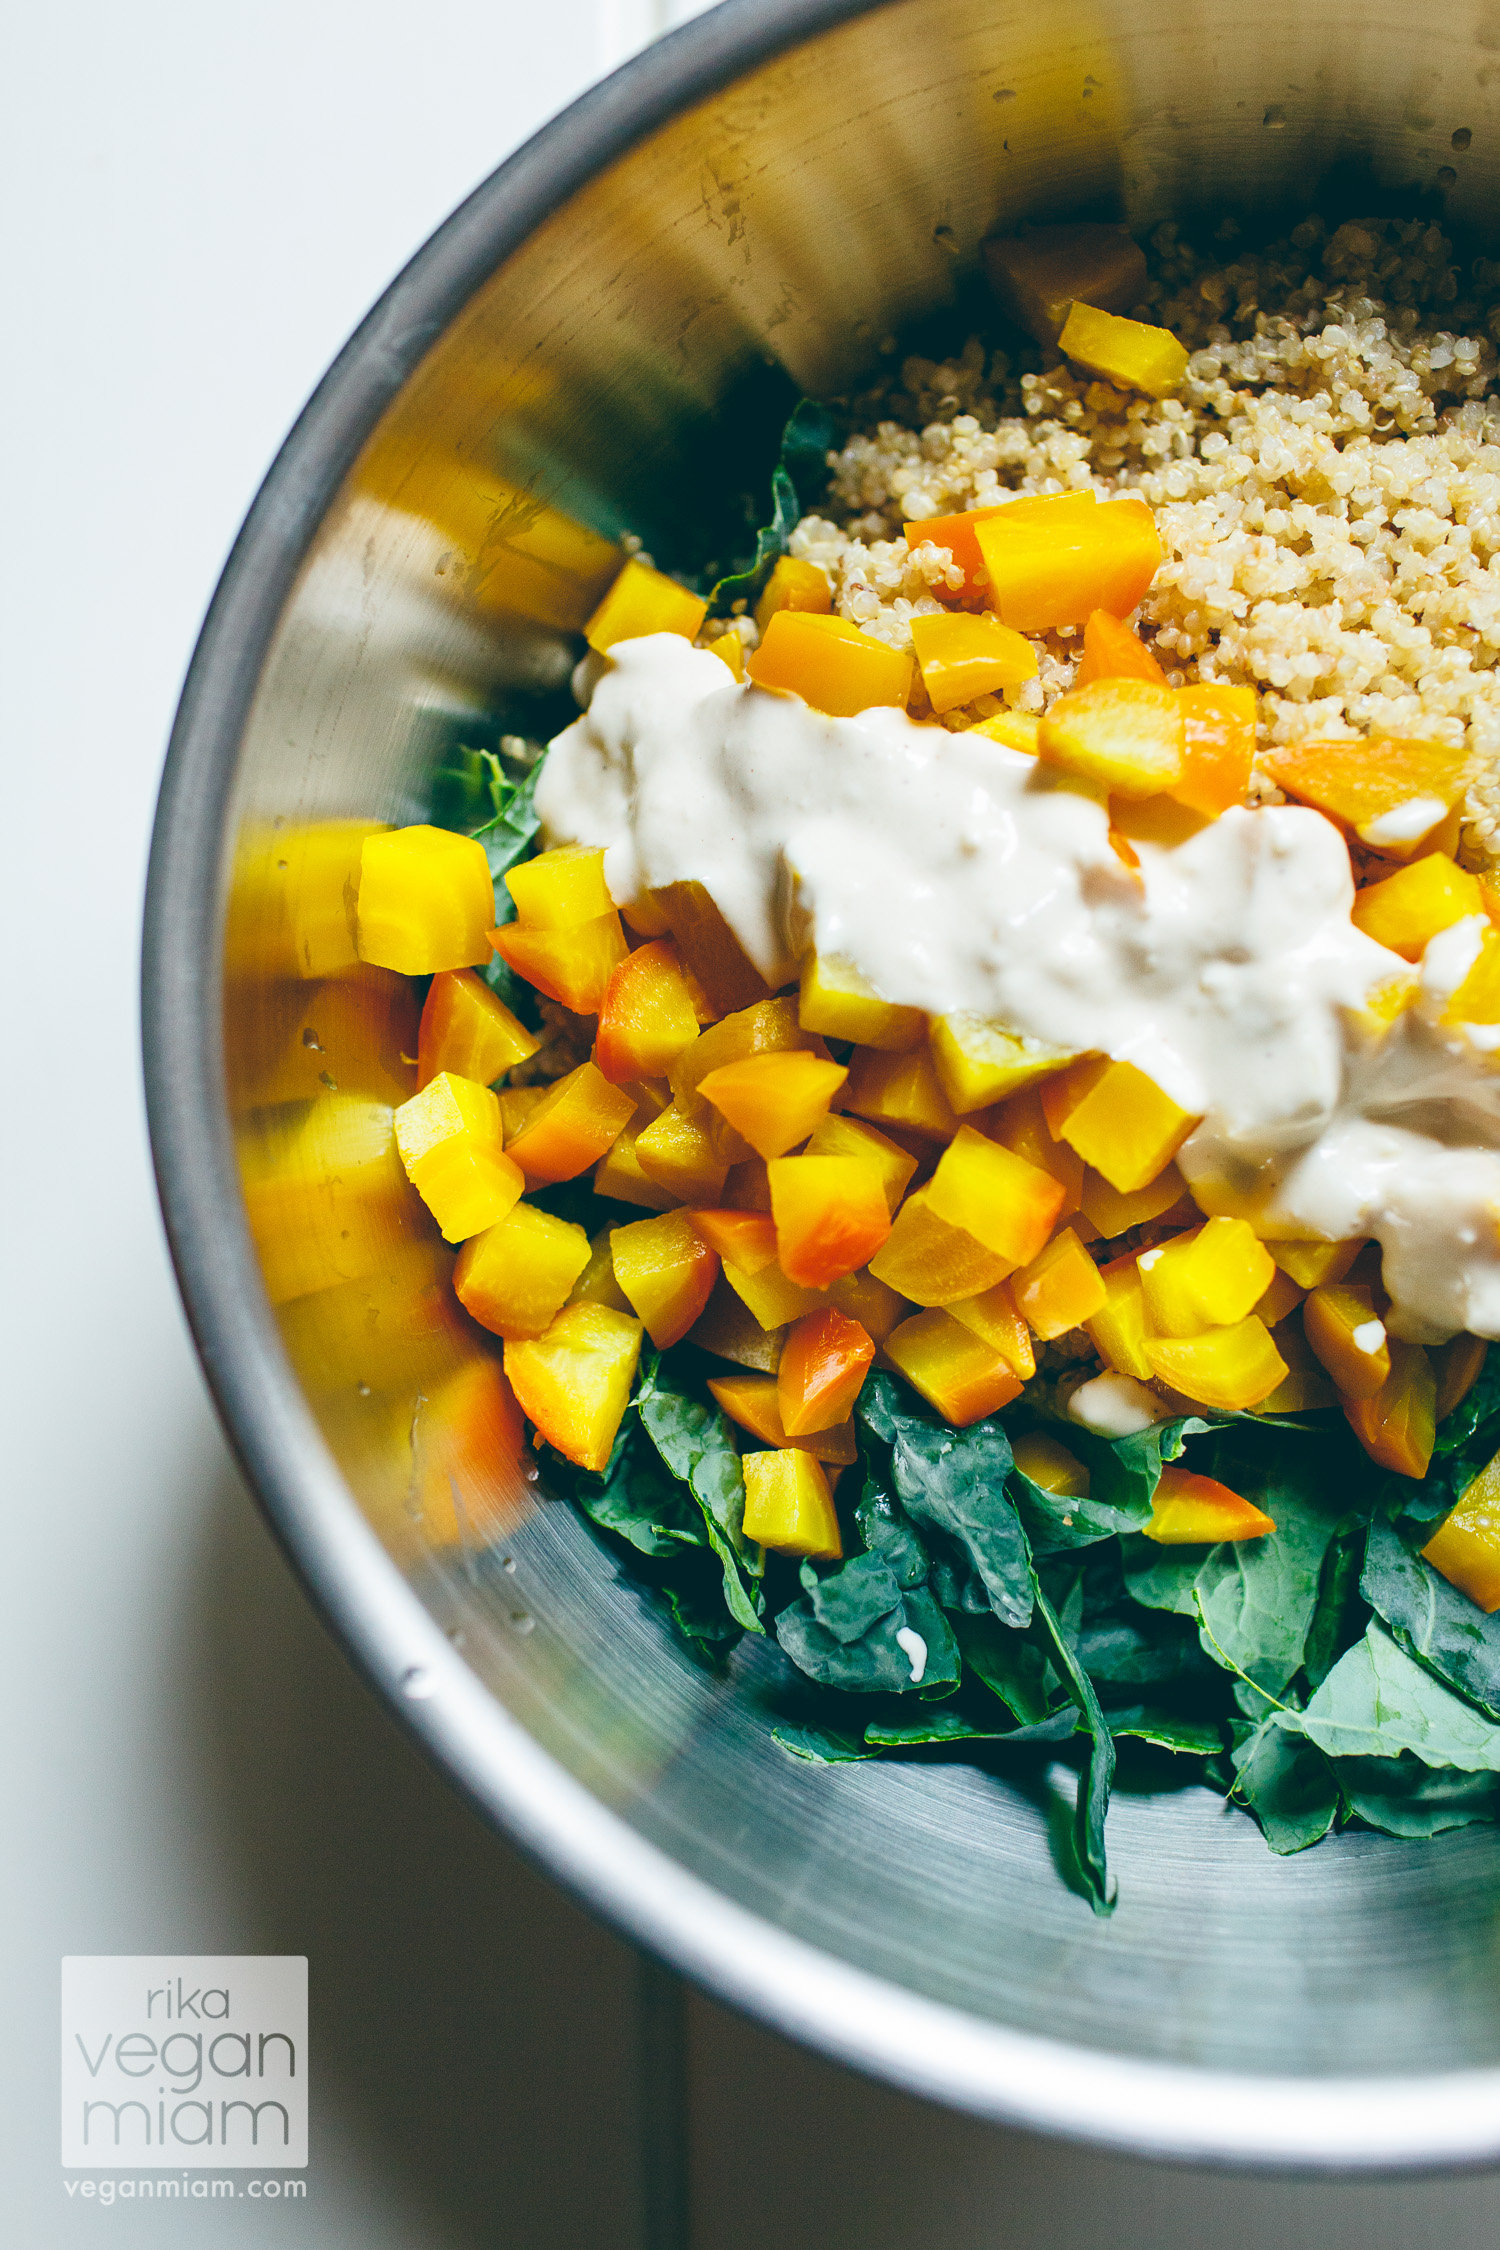 Roasted Golden Beetroot, Quinoa + Kale Salad